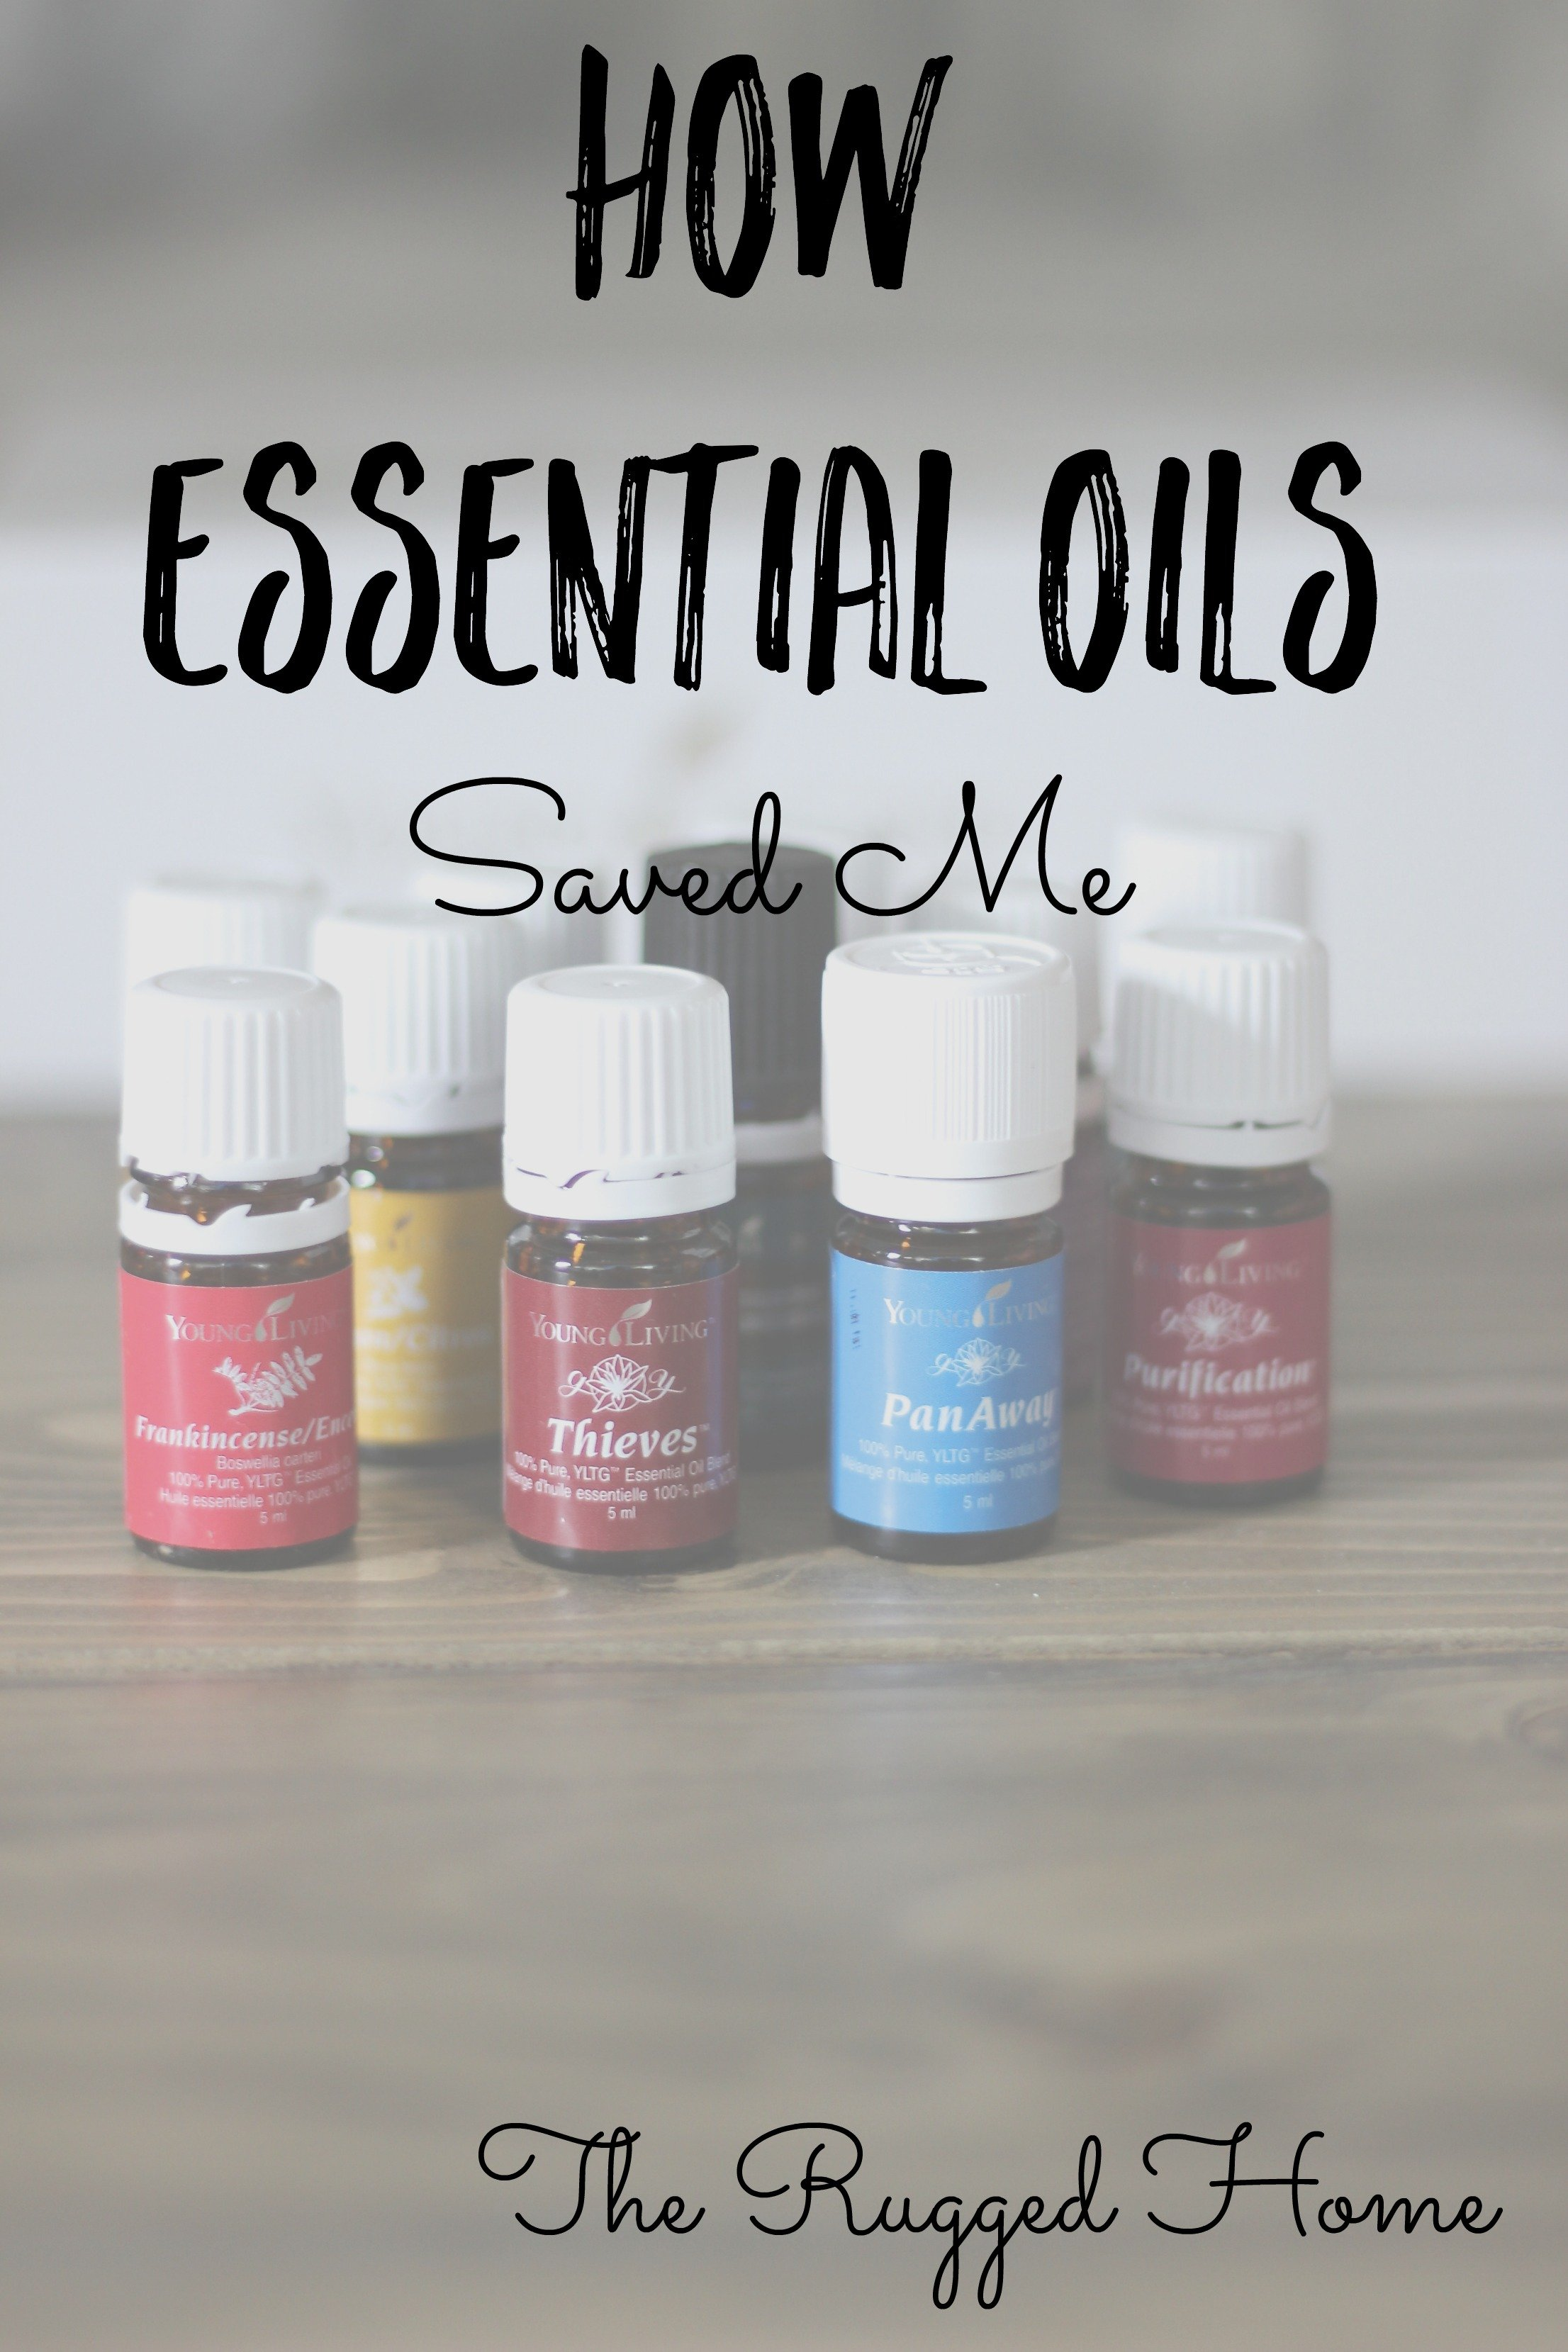 How I literally Turned My Life Around With Essential Oils. I was spiralling down, Stressed, Wasn't Sleeping All, Body Always Ached. I spent my Days In A Zombie Body and was normally too tired to get out of my PJs. Essential Oils by Young Living are the best thing You can do for your body! Read my Post, Custom Link To order today! https://www.youngliving.com/vo/#/signup/start?site=CA&sponsorid=3891368&enrollerid=3891368